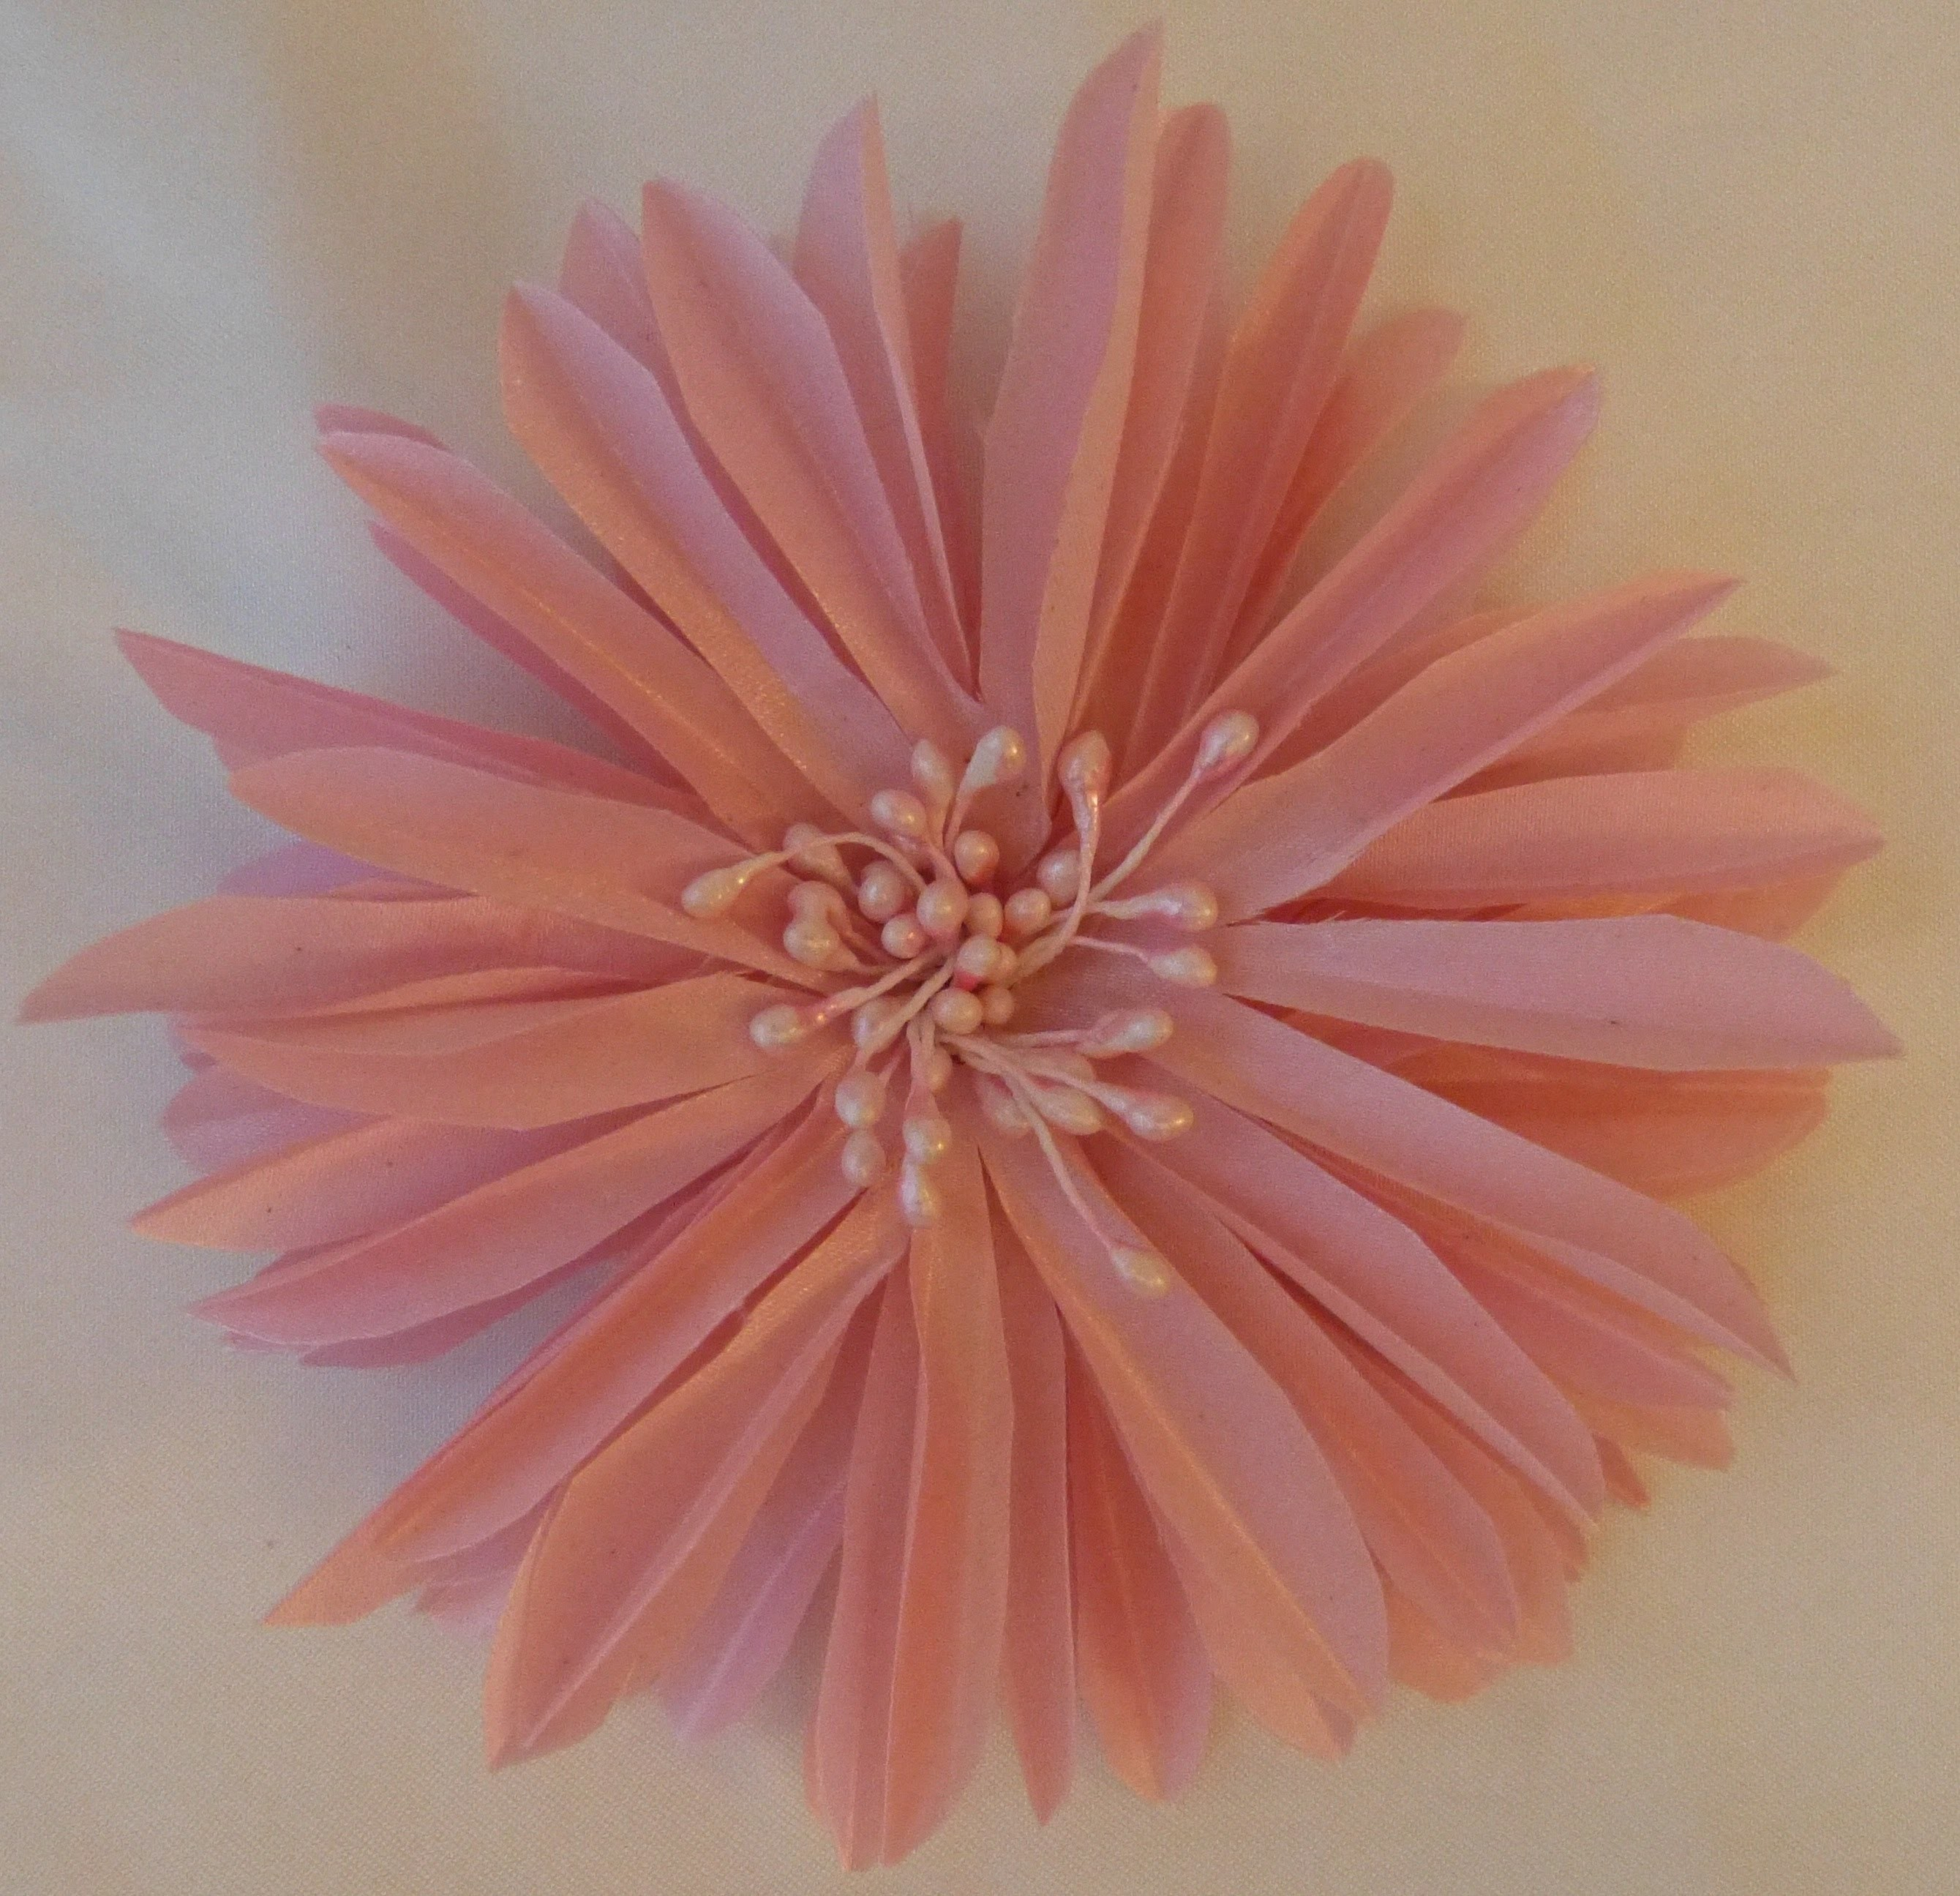 Fabric flower tutorial live show (Recorded)